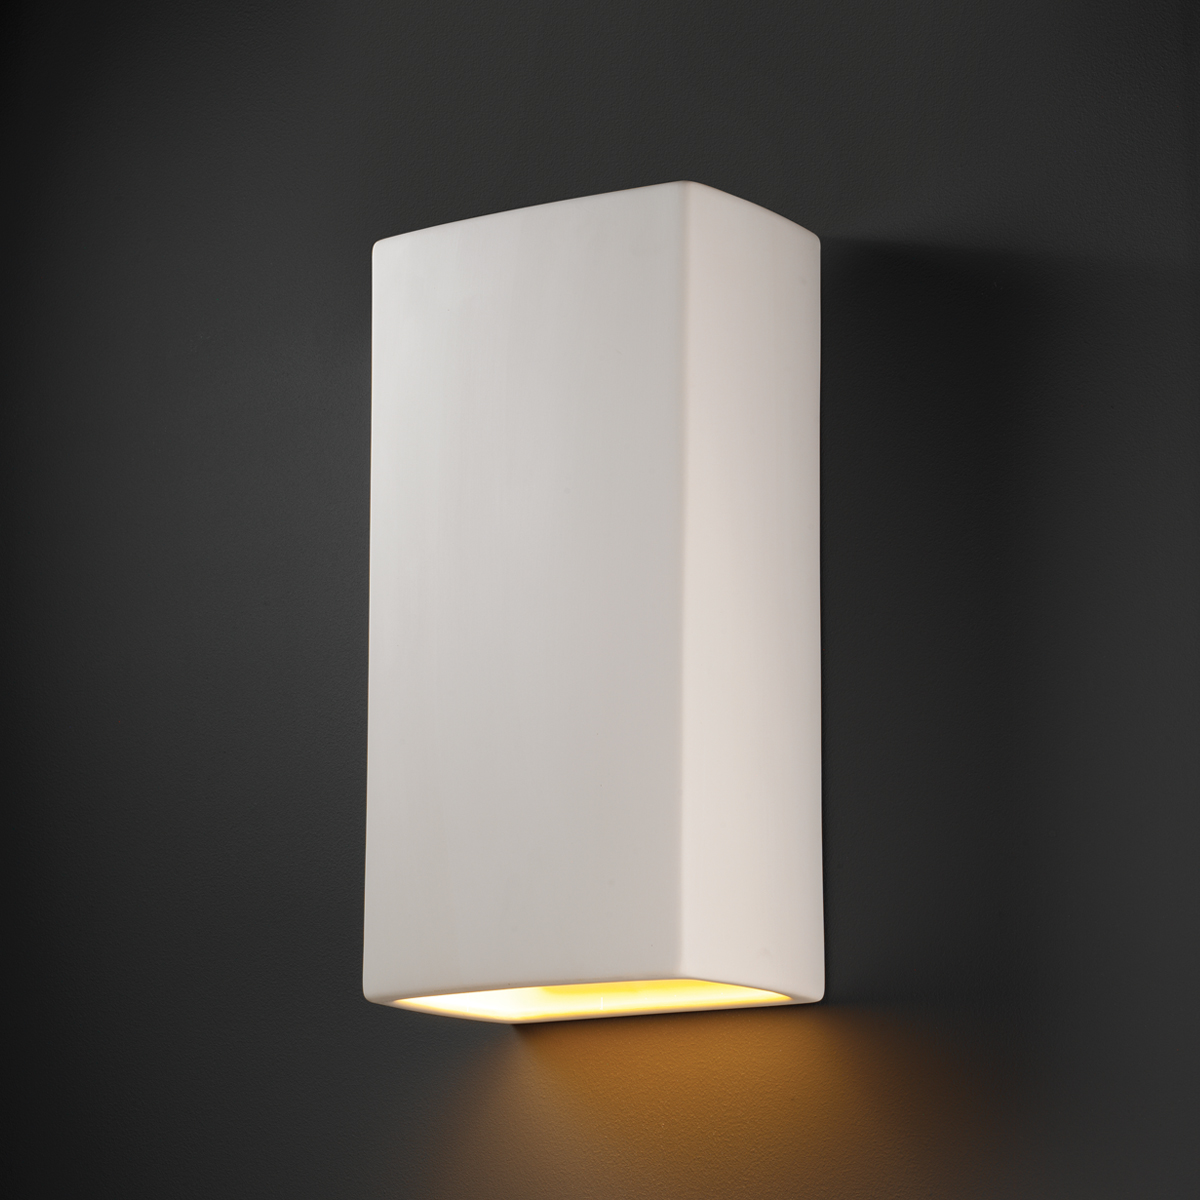 Justice Design (CER-1170W) Really Big Outdoor Rectangle Wall Sconce from the Ambiance Collection